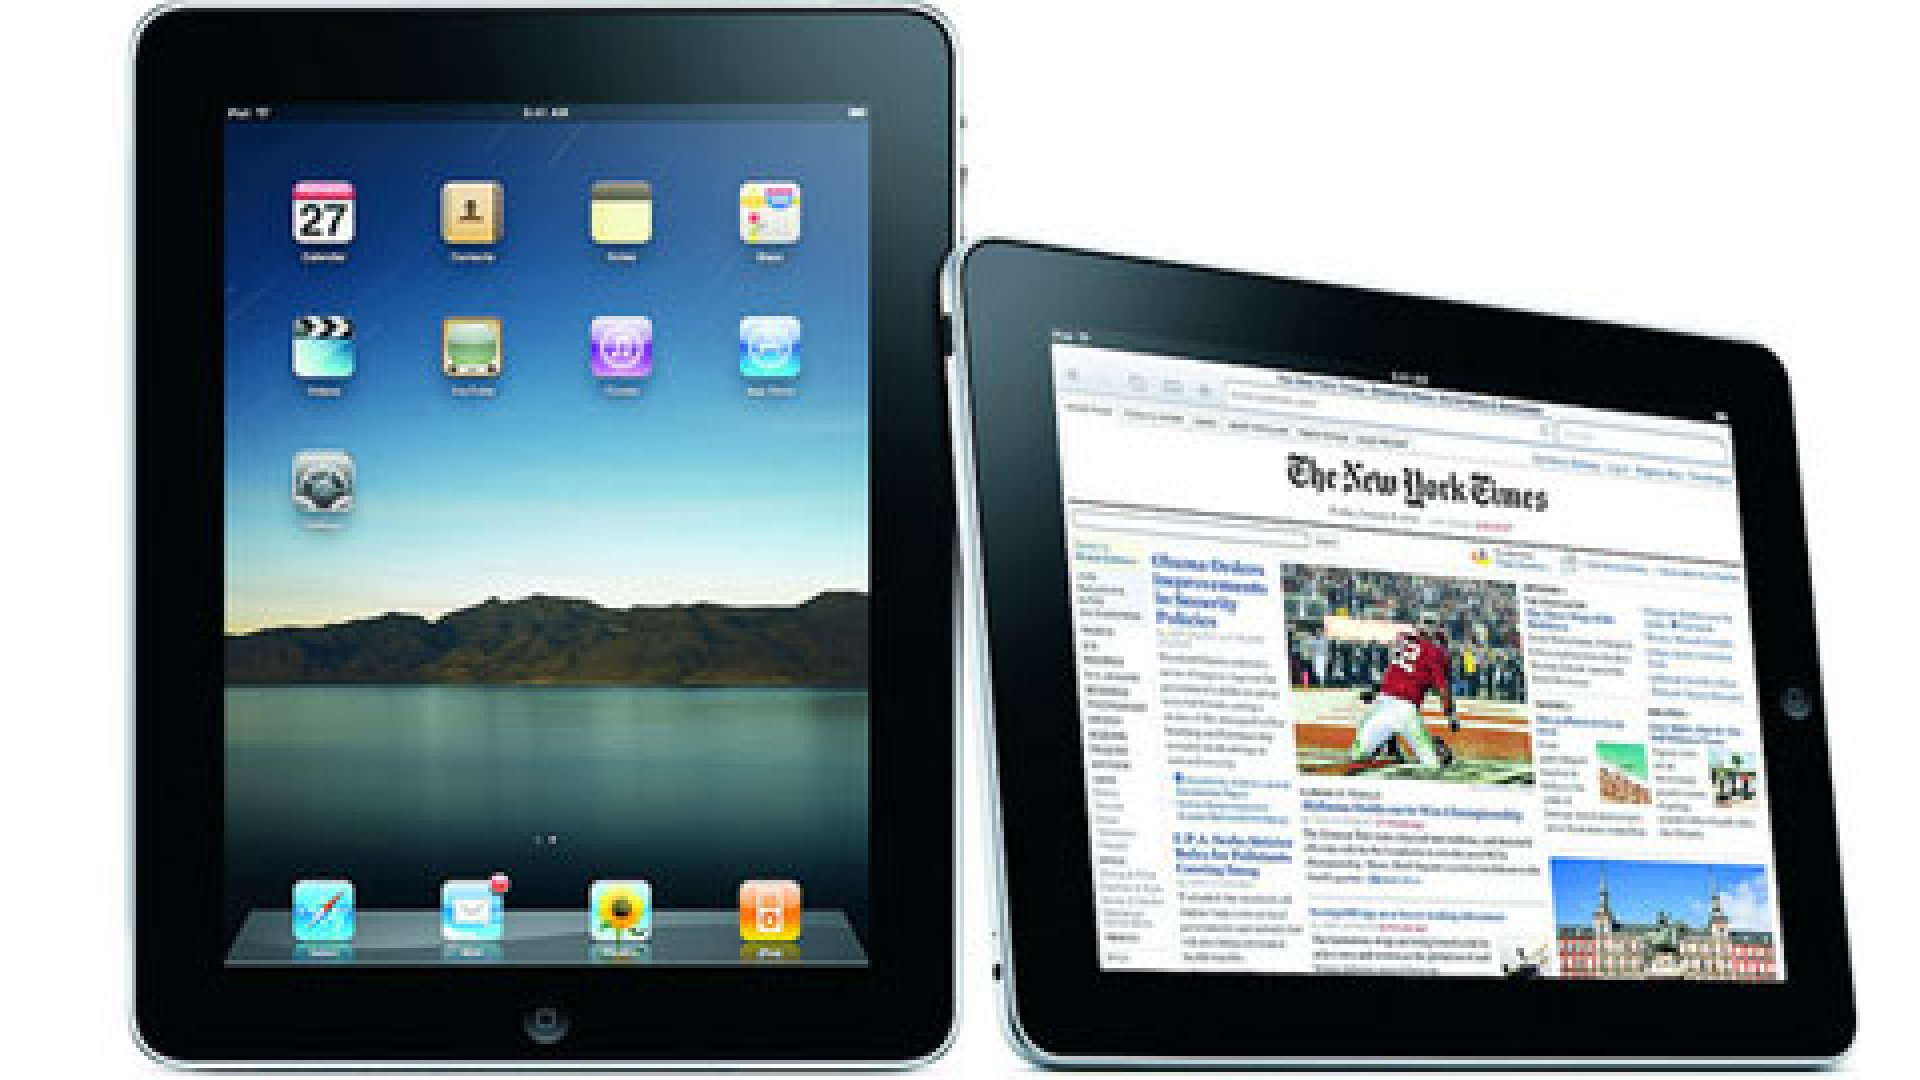 The latest iPad rumor? Apple is going to release a 7-inch version of the wildly popular 10-inch tablet (pictured above).